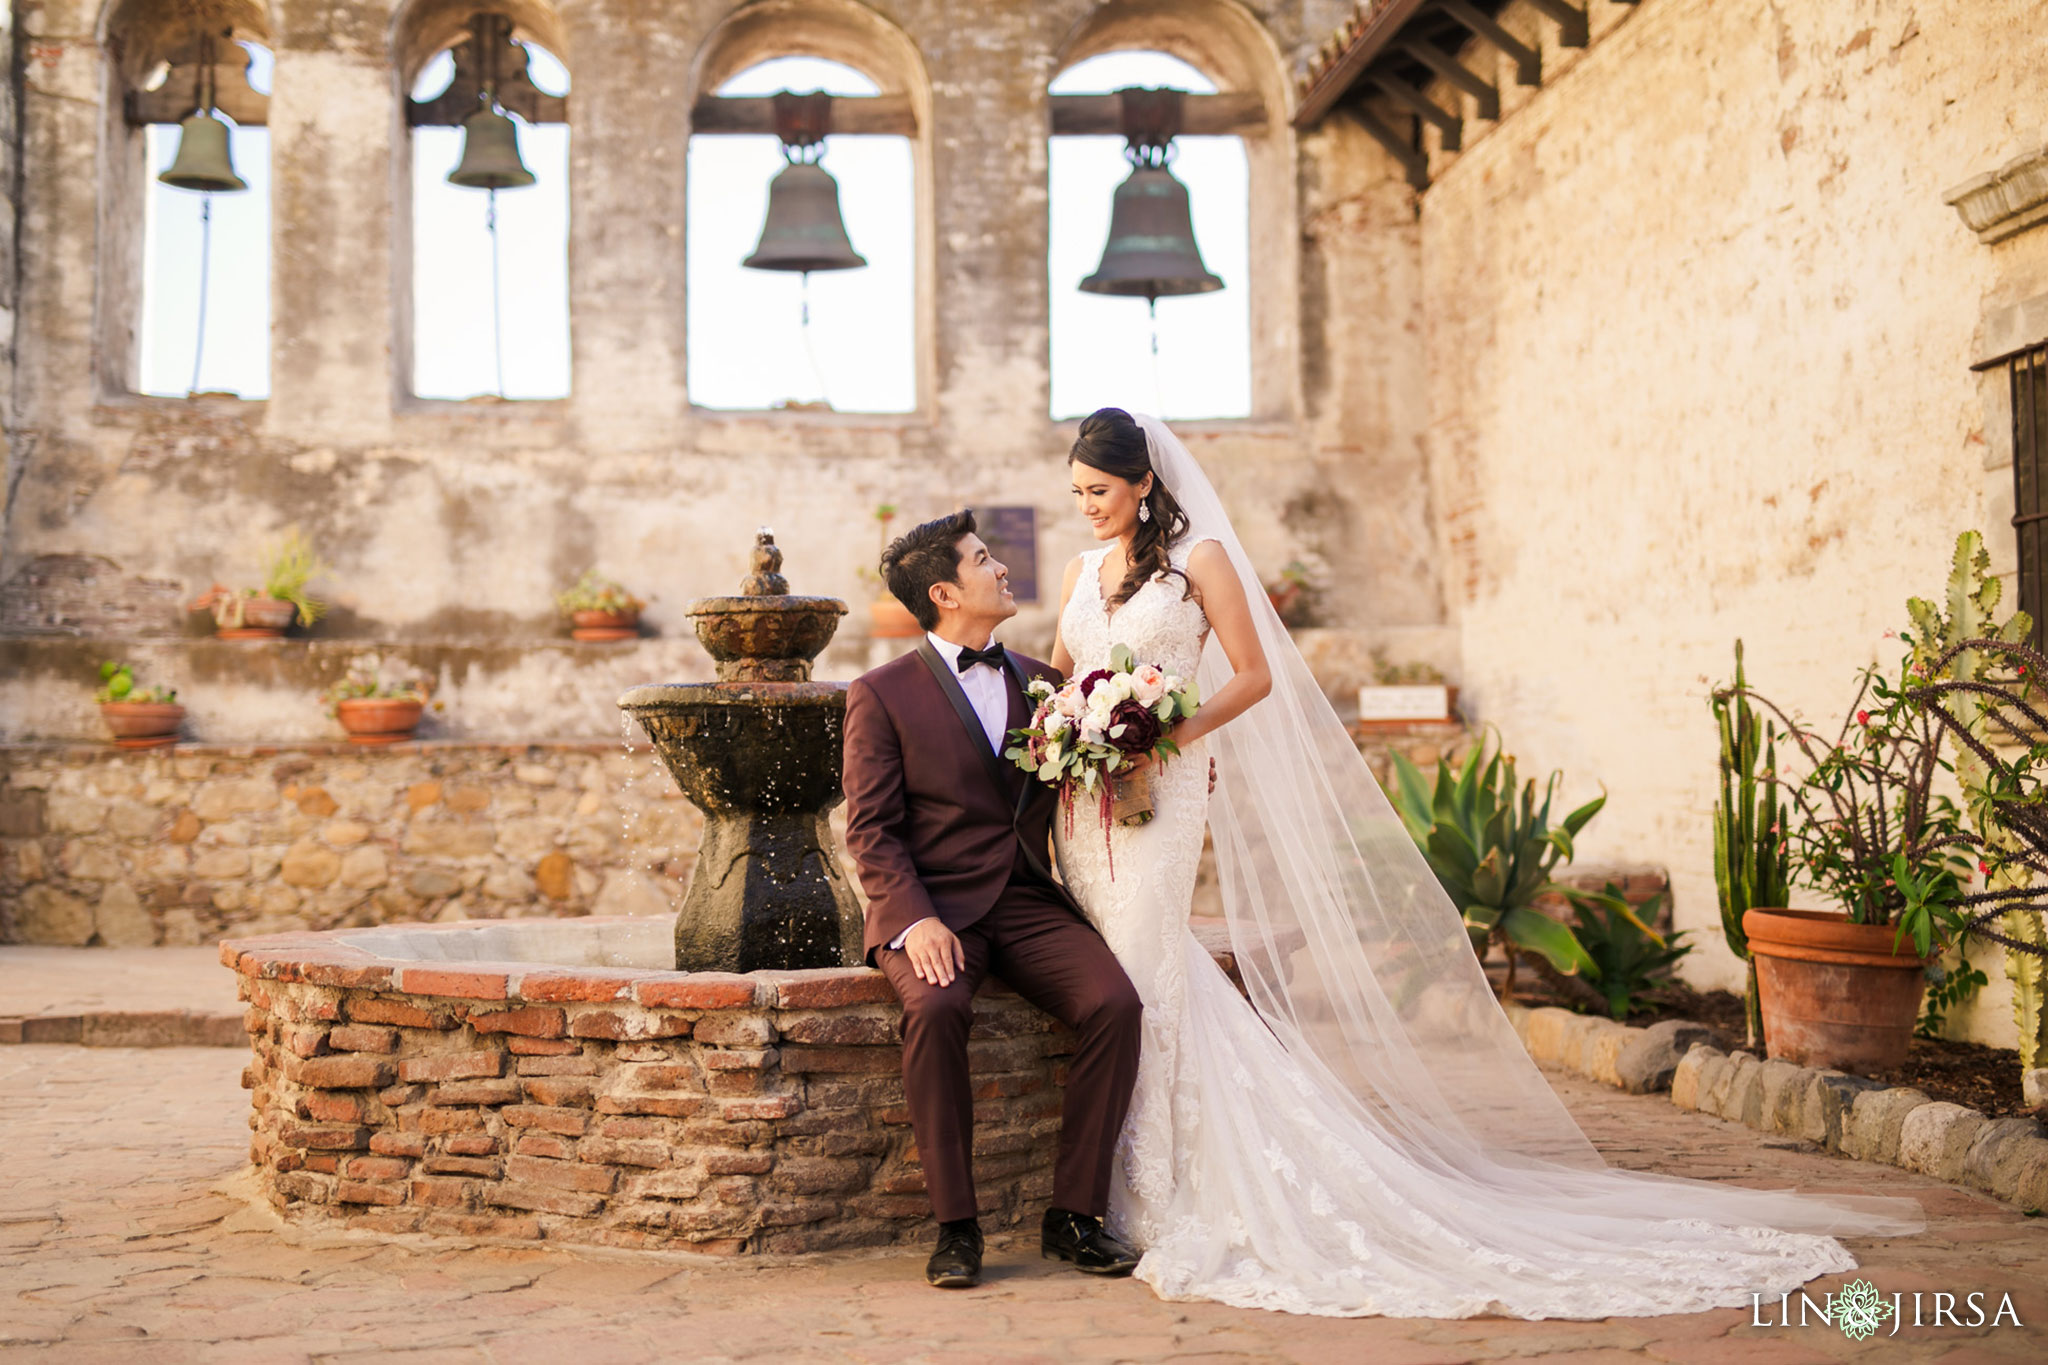 35 mission san juan capistrano wedding photography